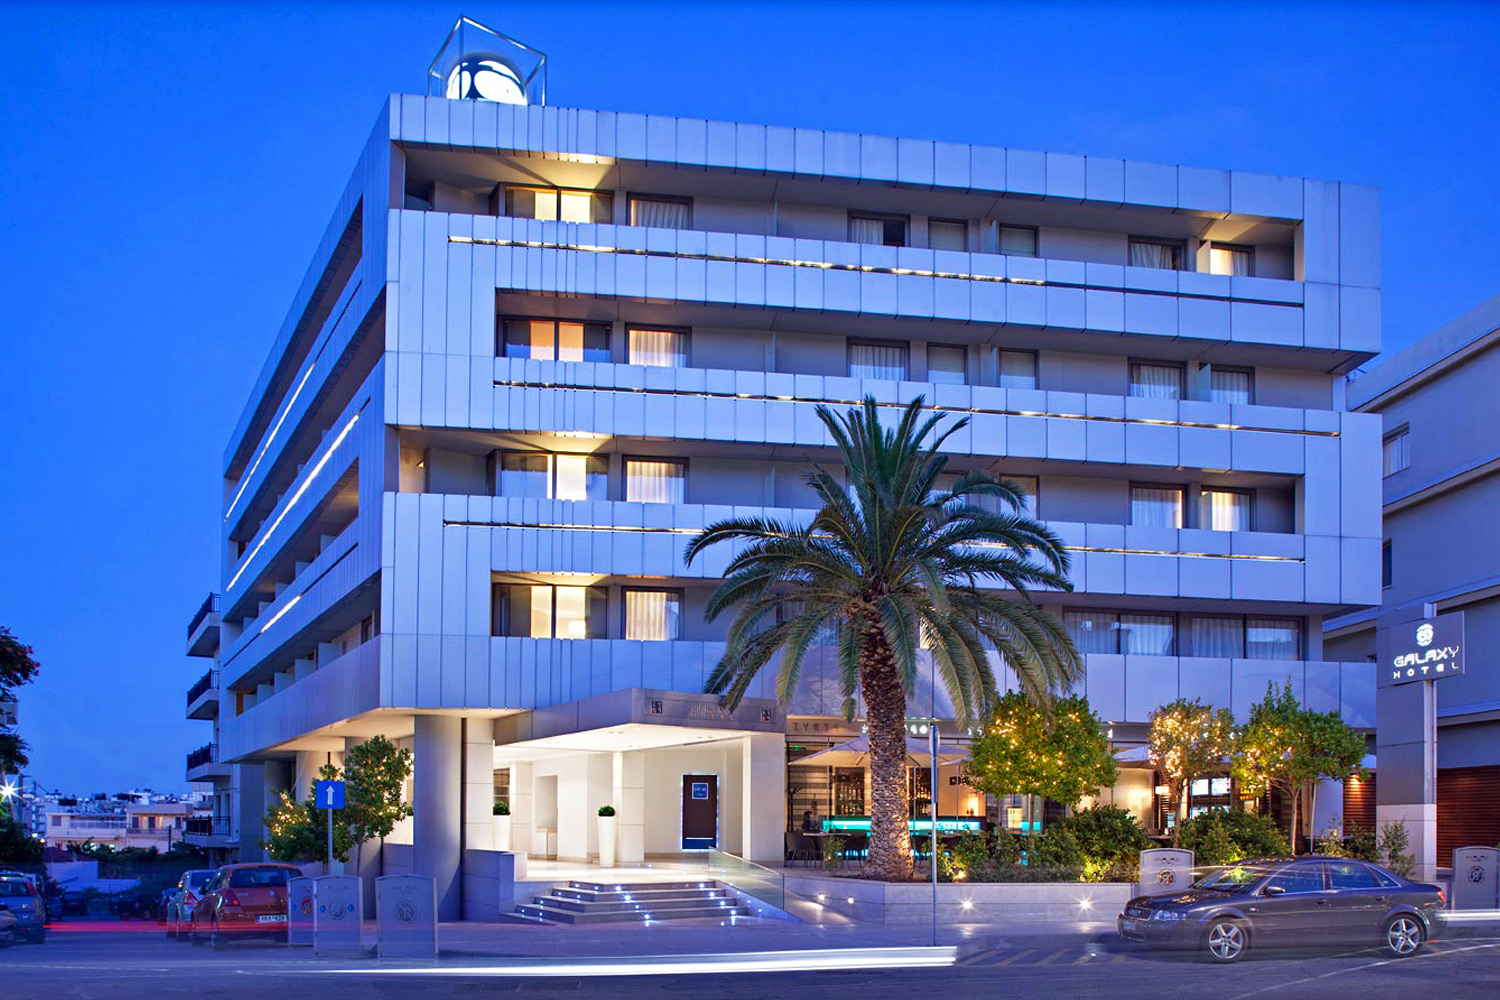 Galaxy Hotel. Heraklion, Crete